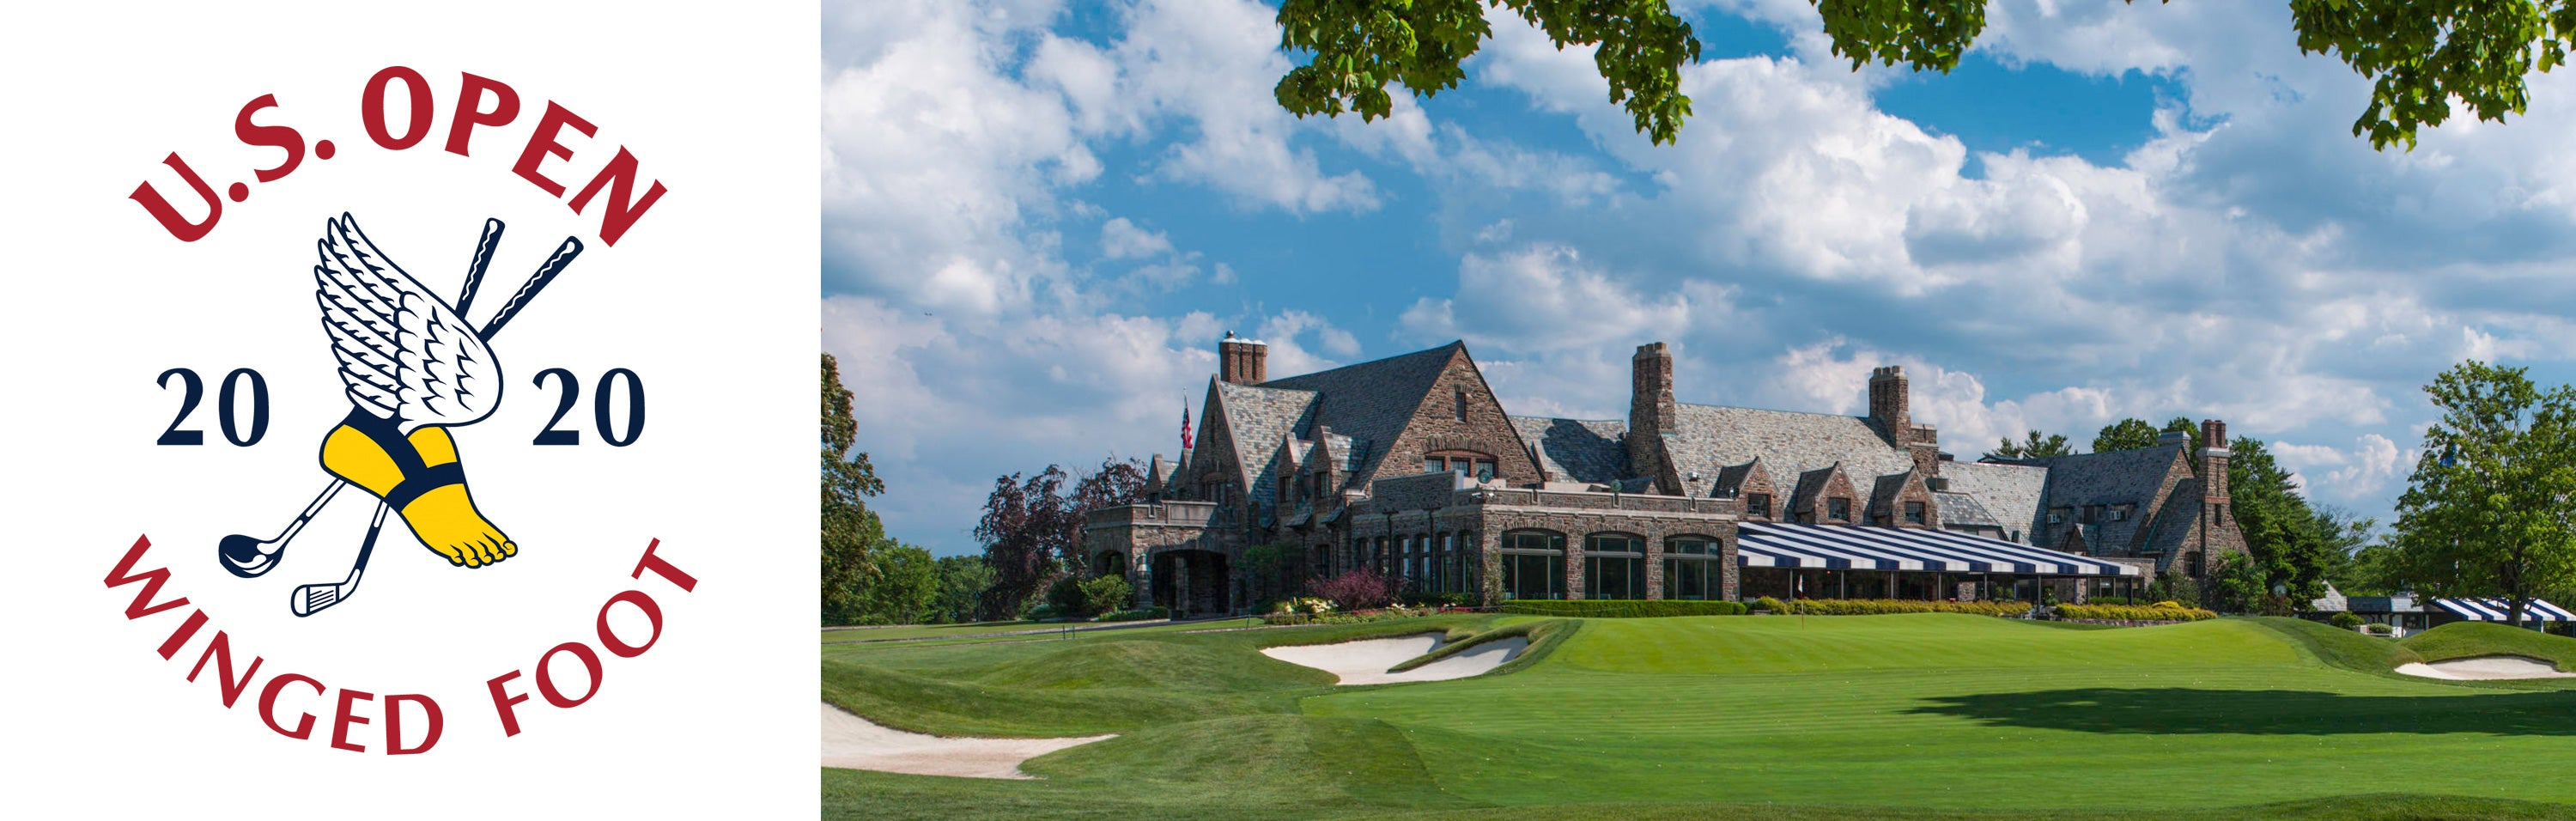 2020 US Open - Winged Foot